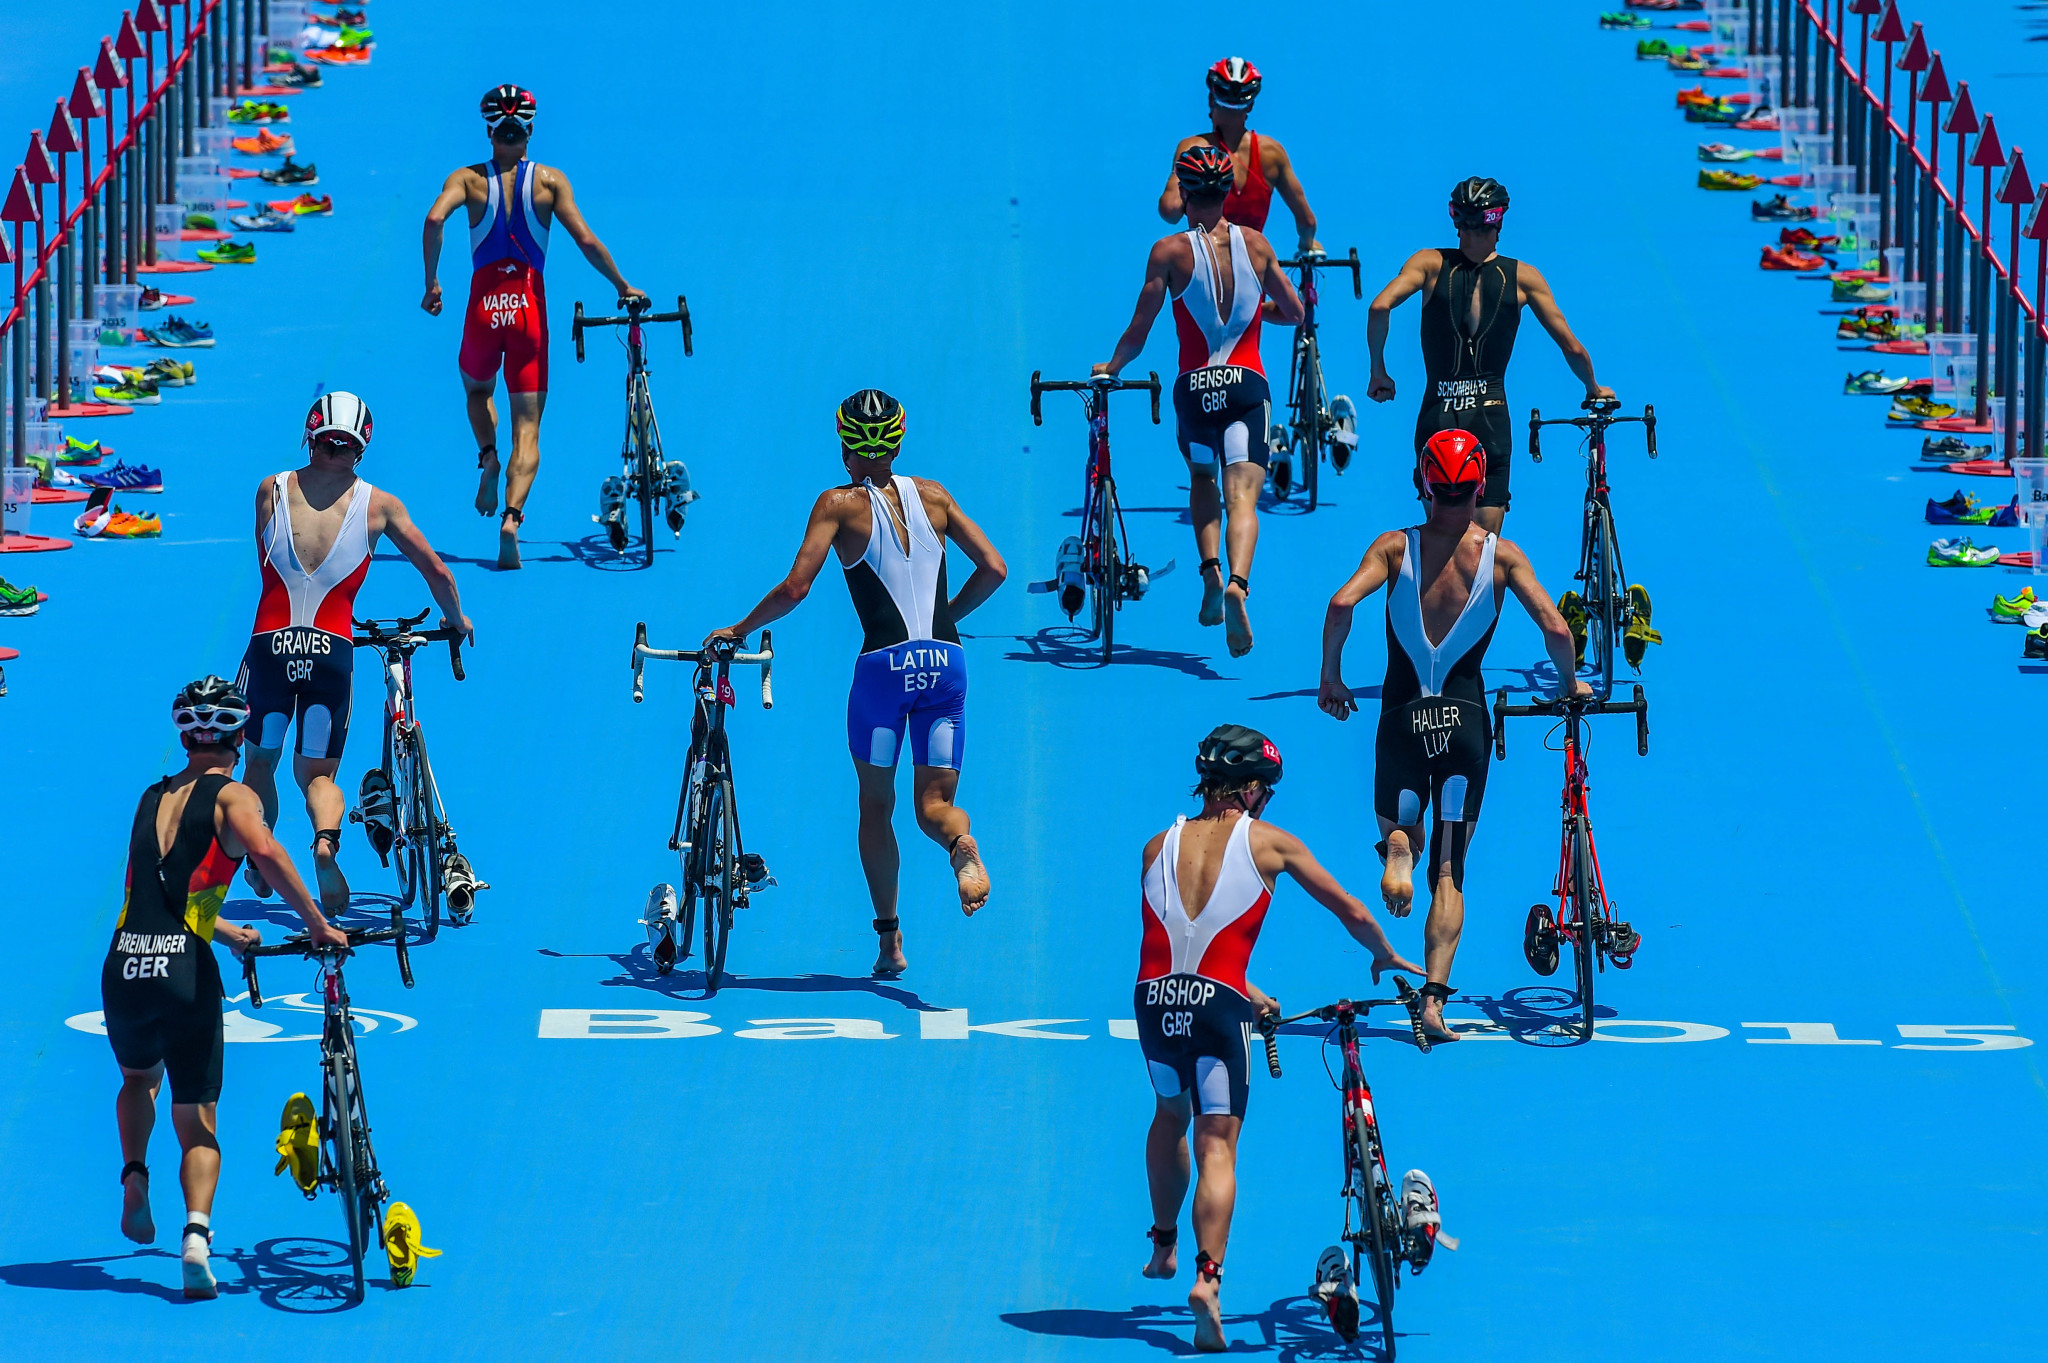 Triathlon last featured at the European Games in Baku in 2015 ©Getty Images